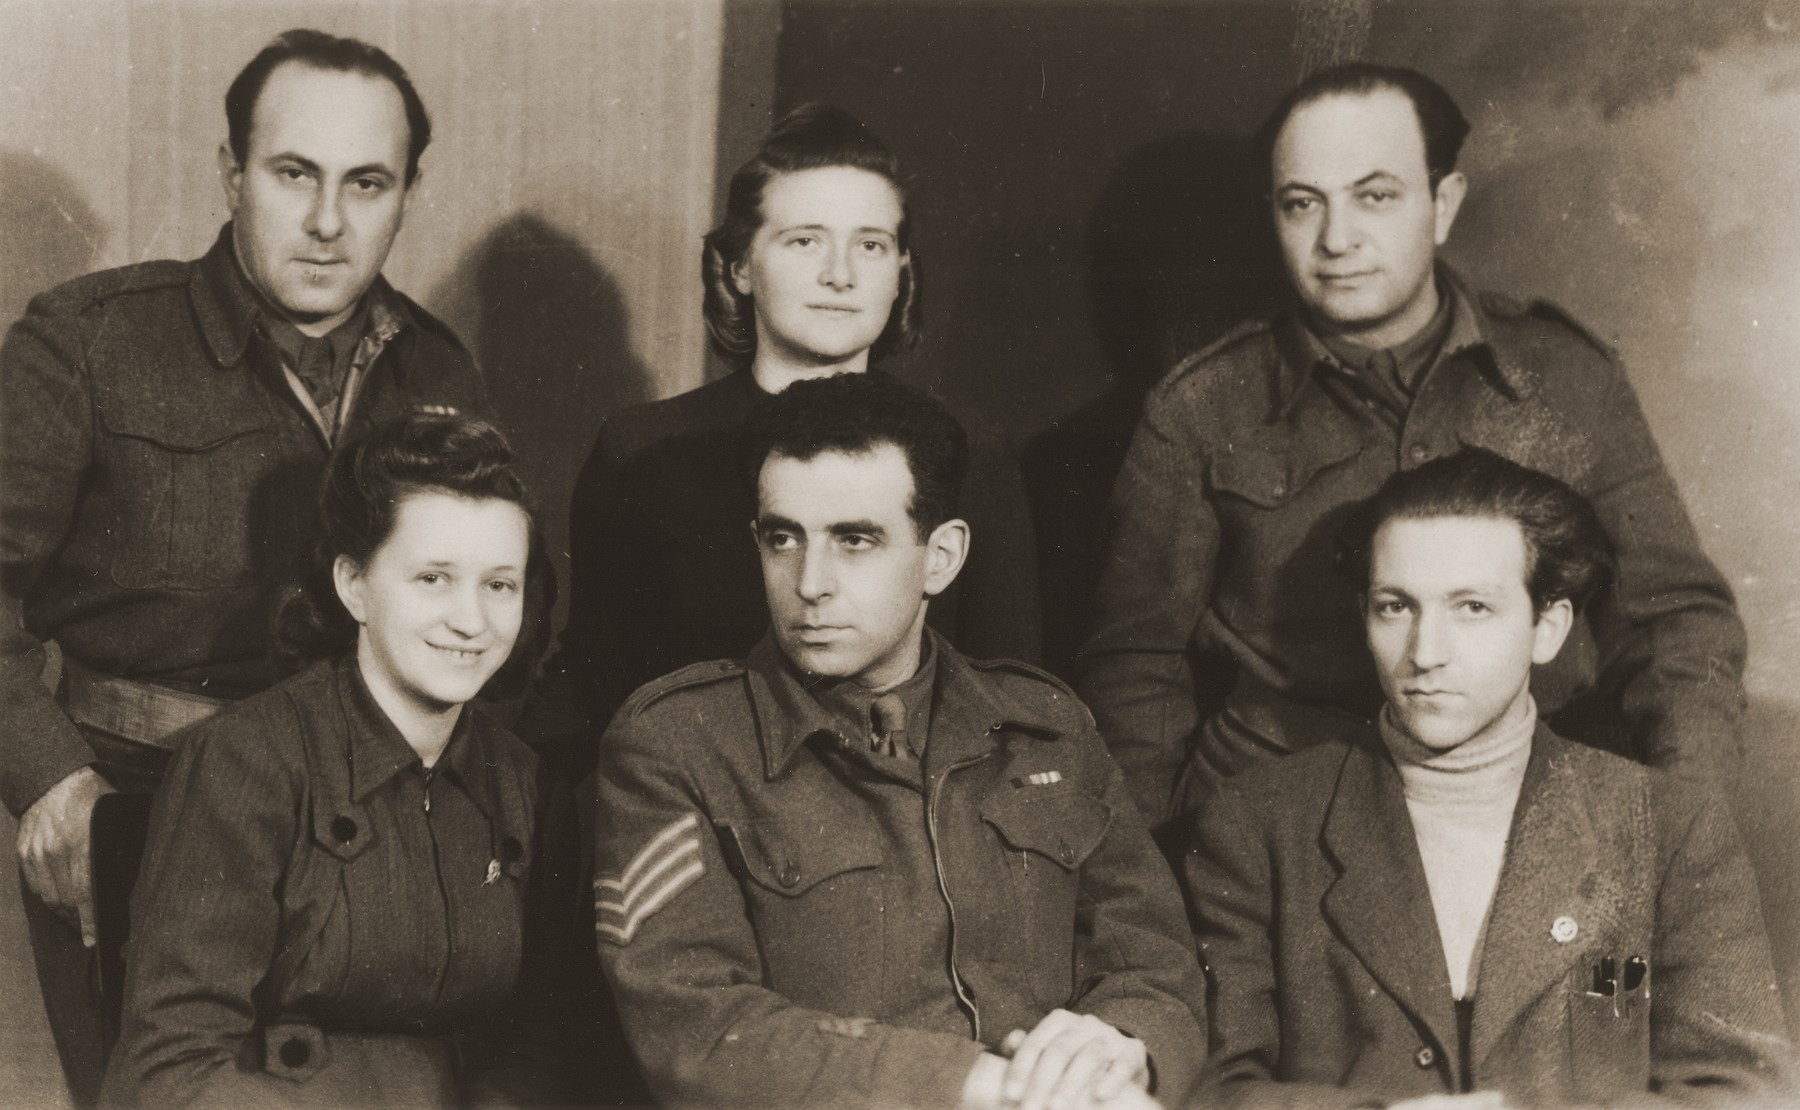 Polish Zionist leaders pose with members of the Jewish Brigade shortly after the war.  Pictured in the back row from left to right are: Pinchas Groner, Haika Grosman, and Judah Tovim.  Also pictured are Hasya Belicka (front row, left) and Moshe Silbertal.